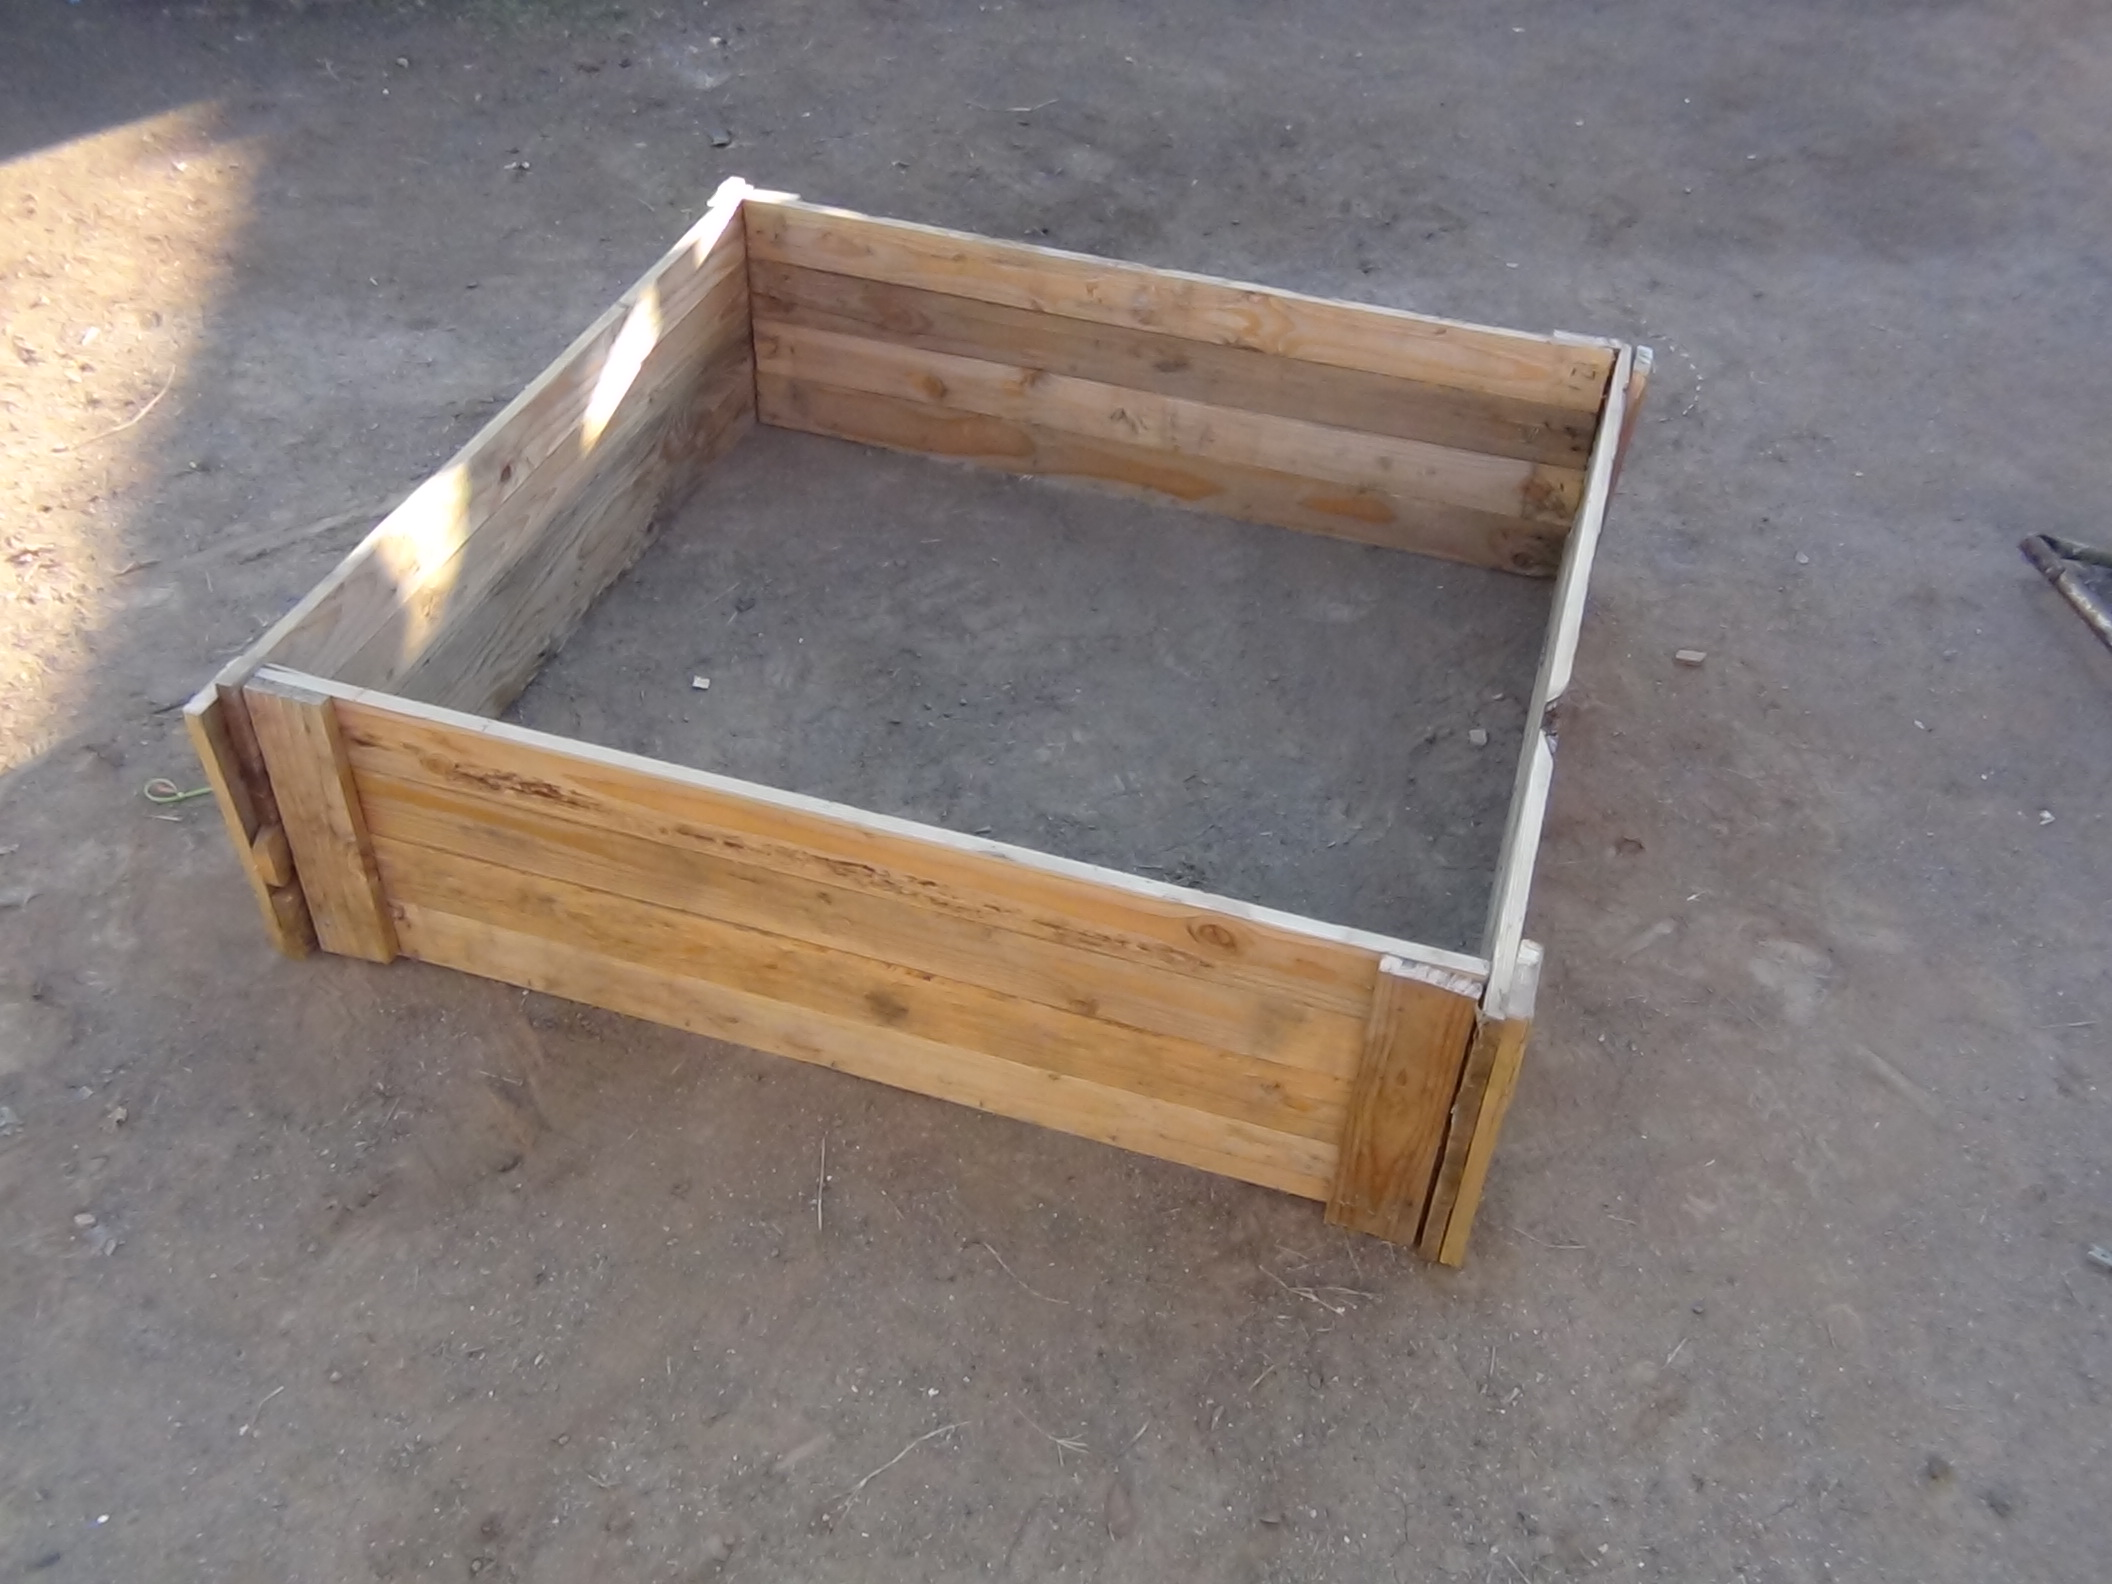 How to make a raised bed garden box from wood pallets.